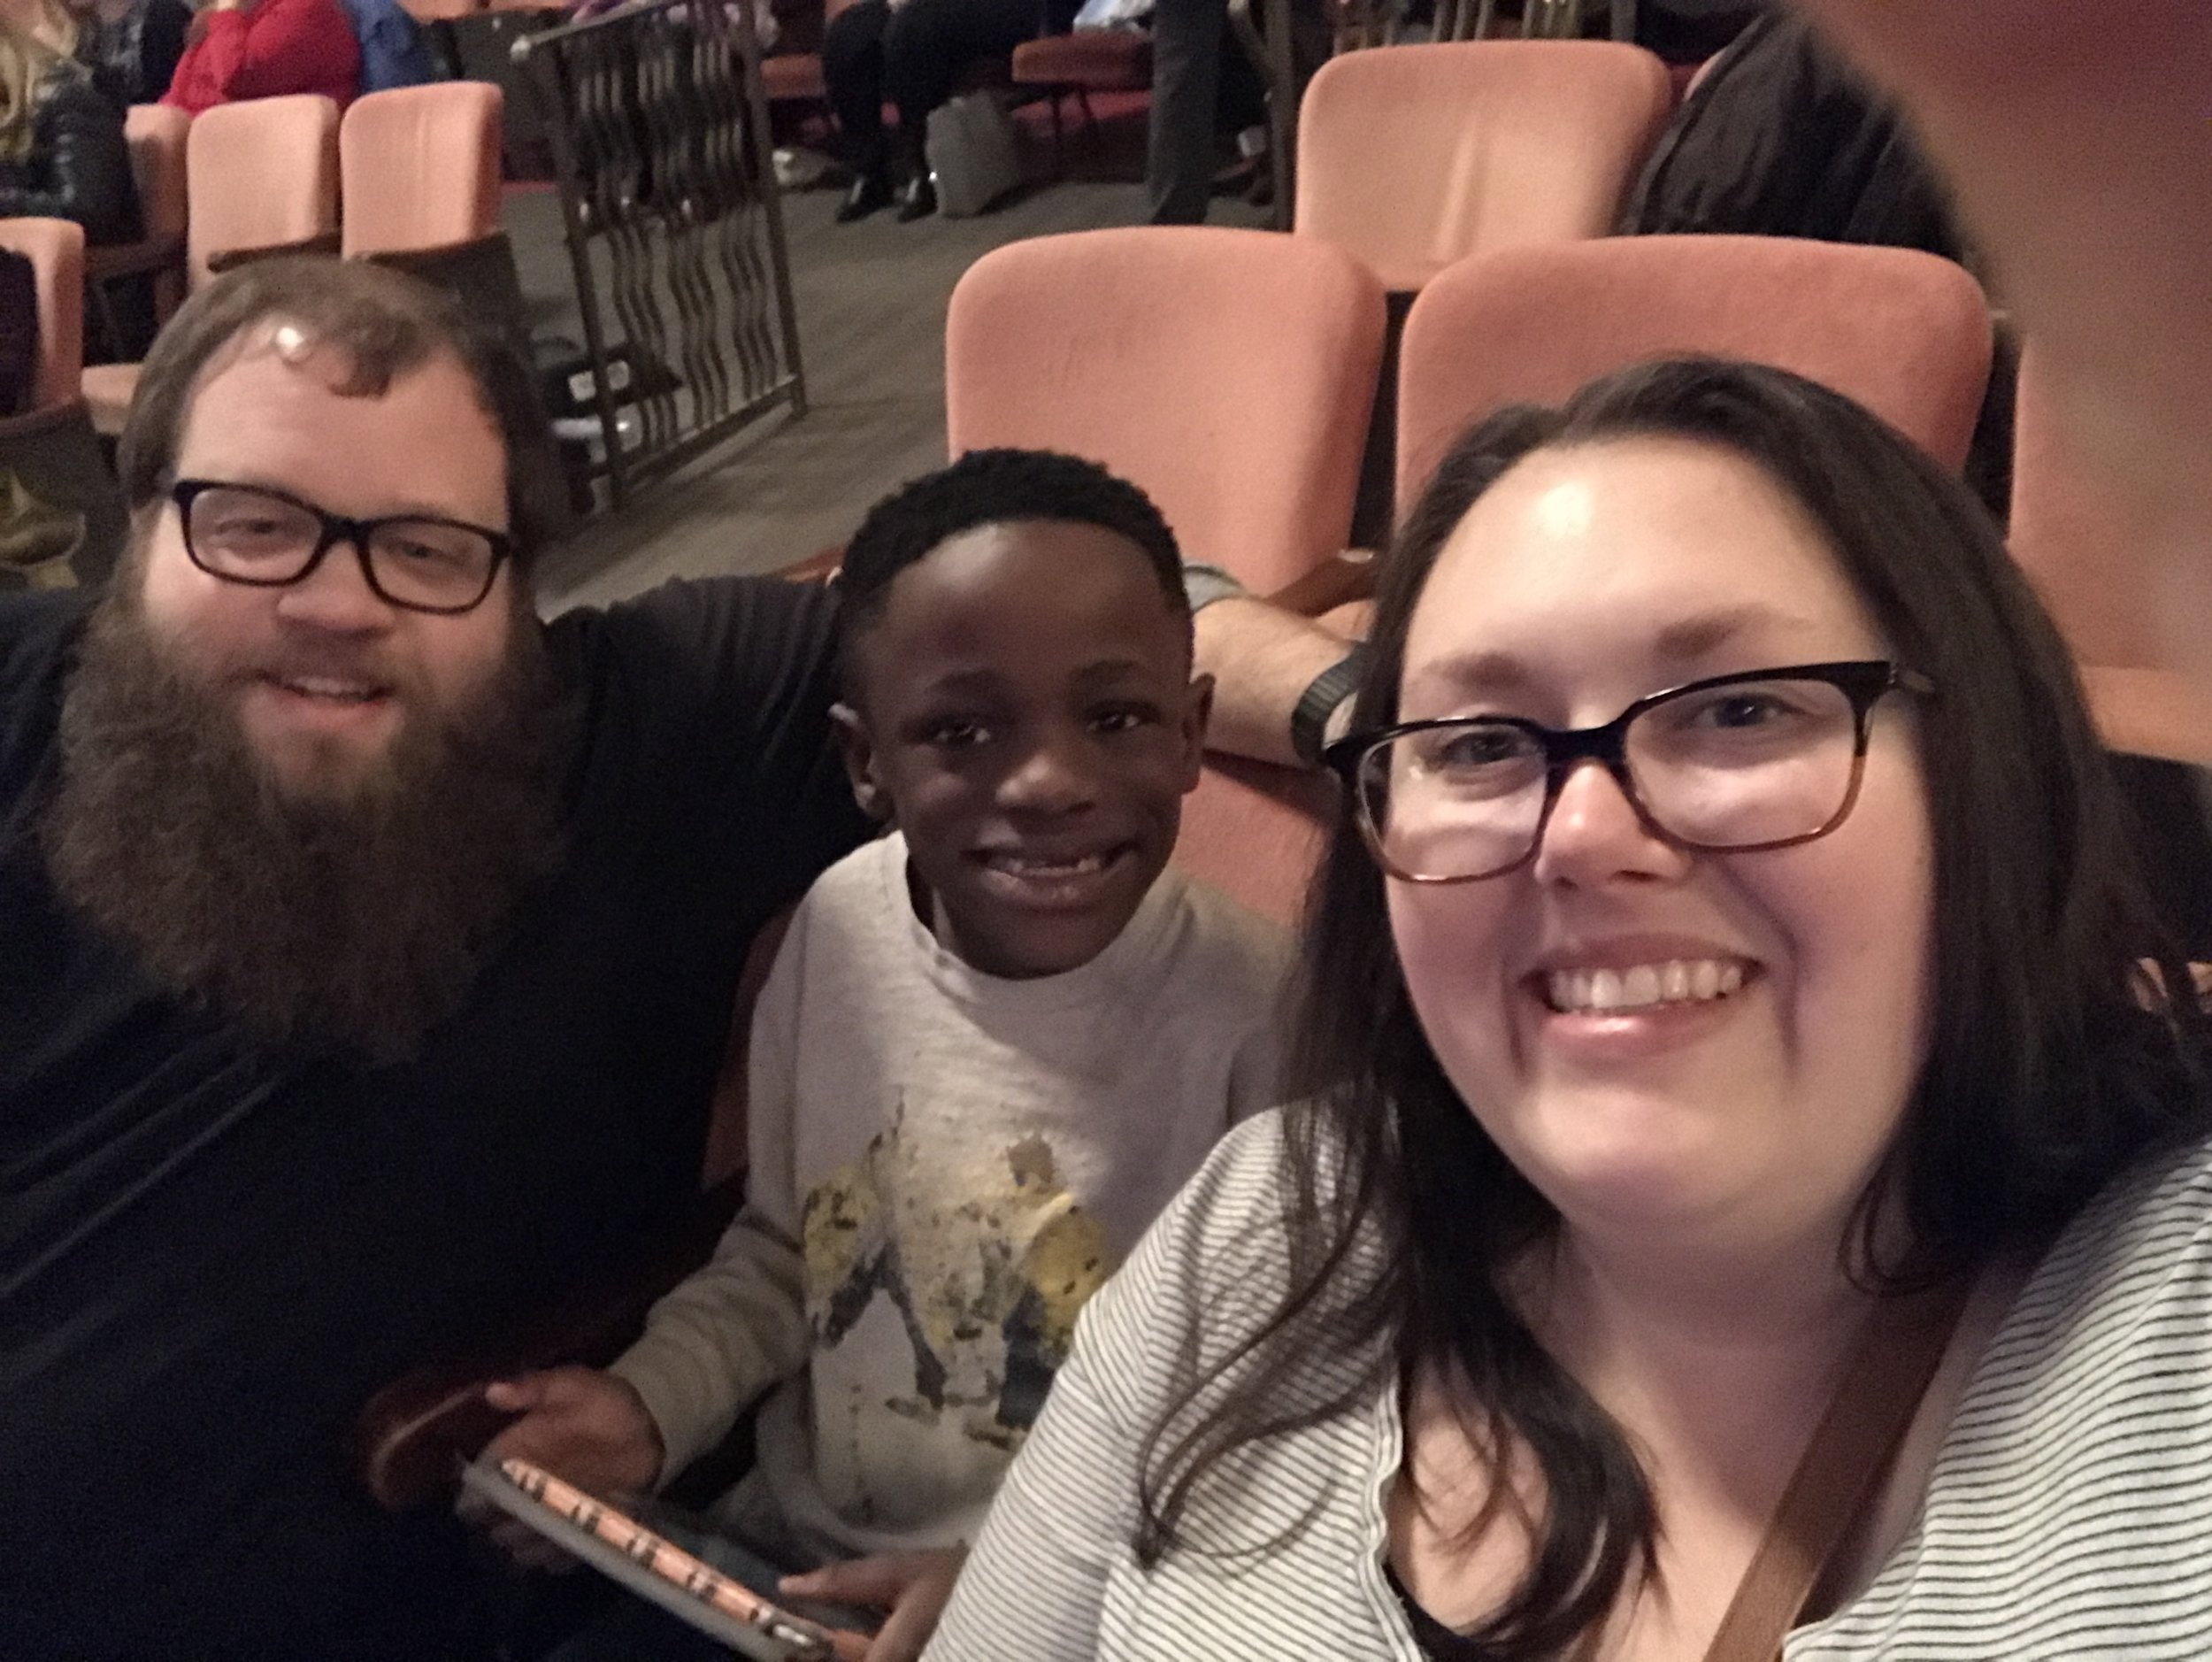 This was actually taken a week before our family anniversary. It was at The Paramount when we went to see the play The Little Mermaid.